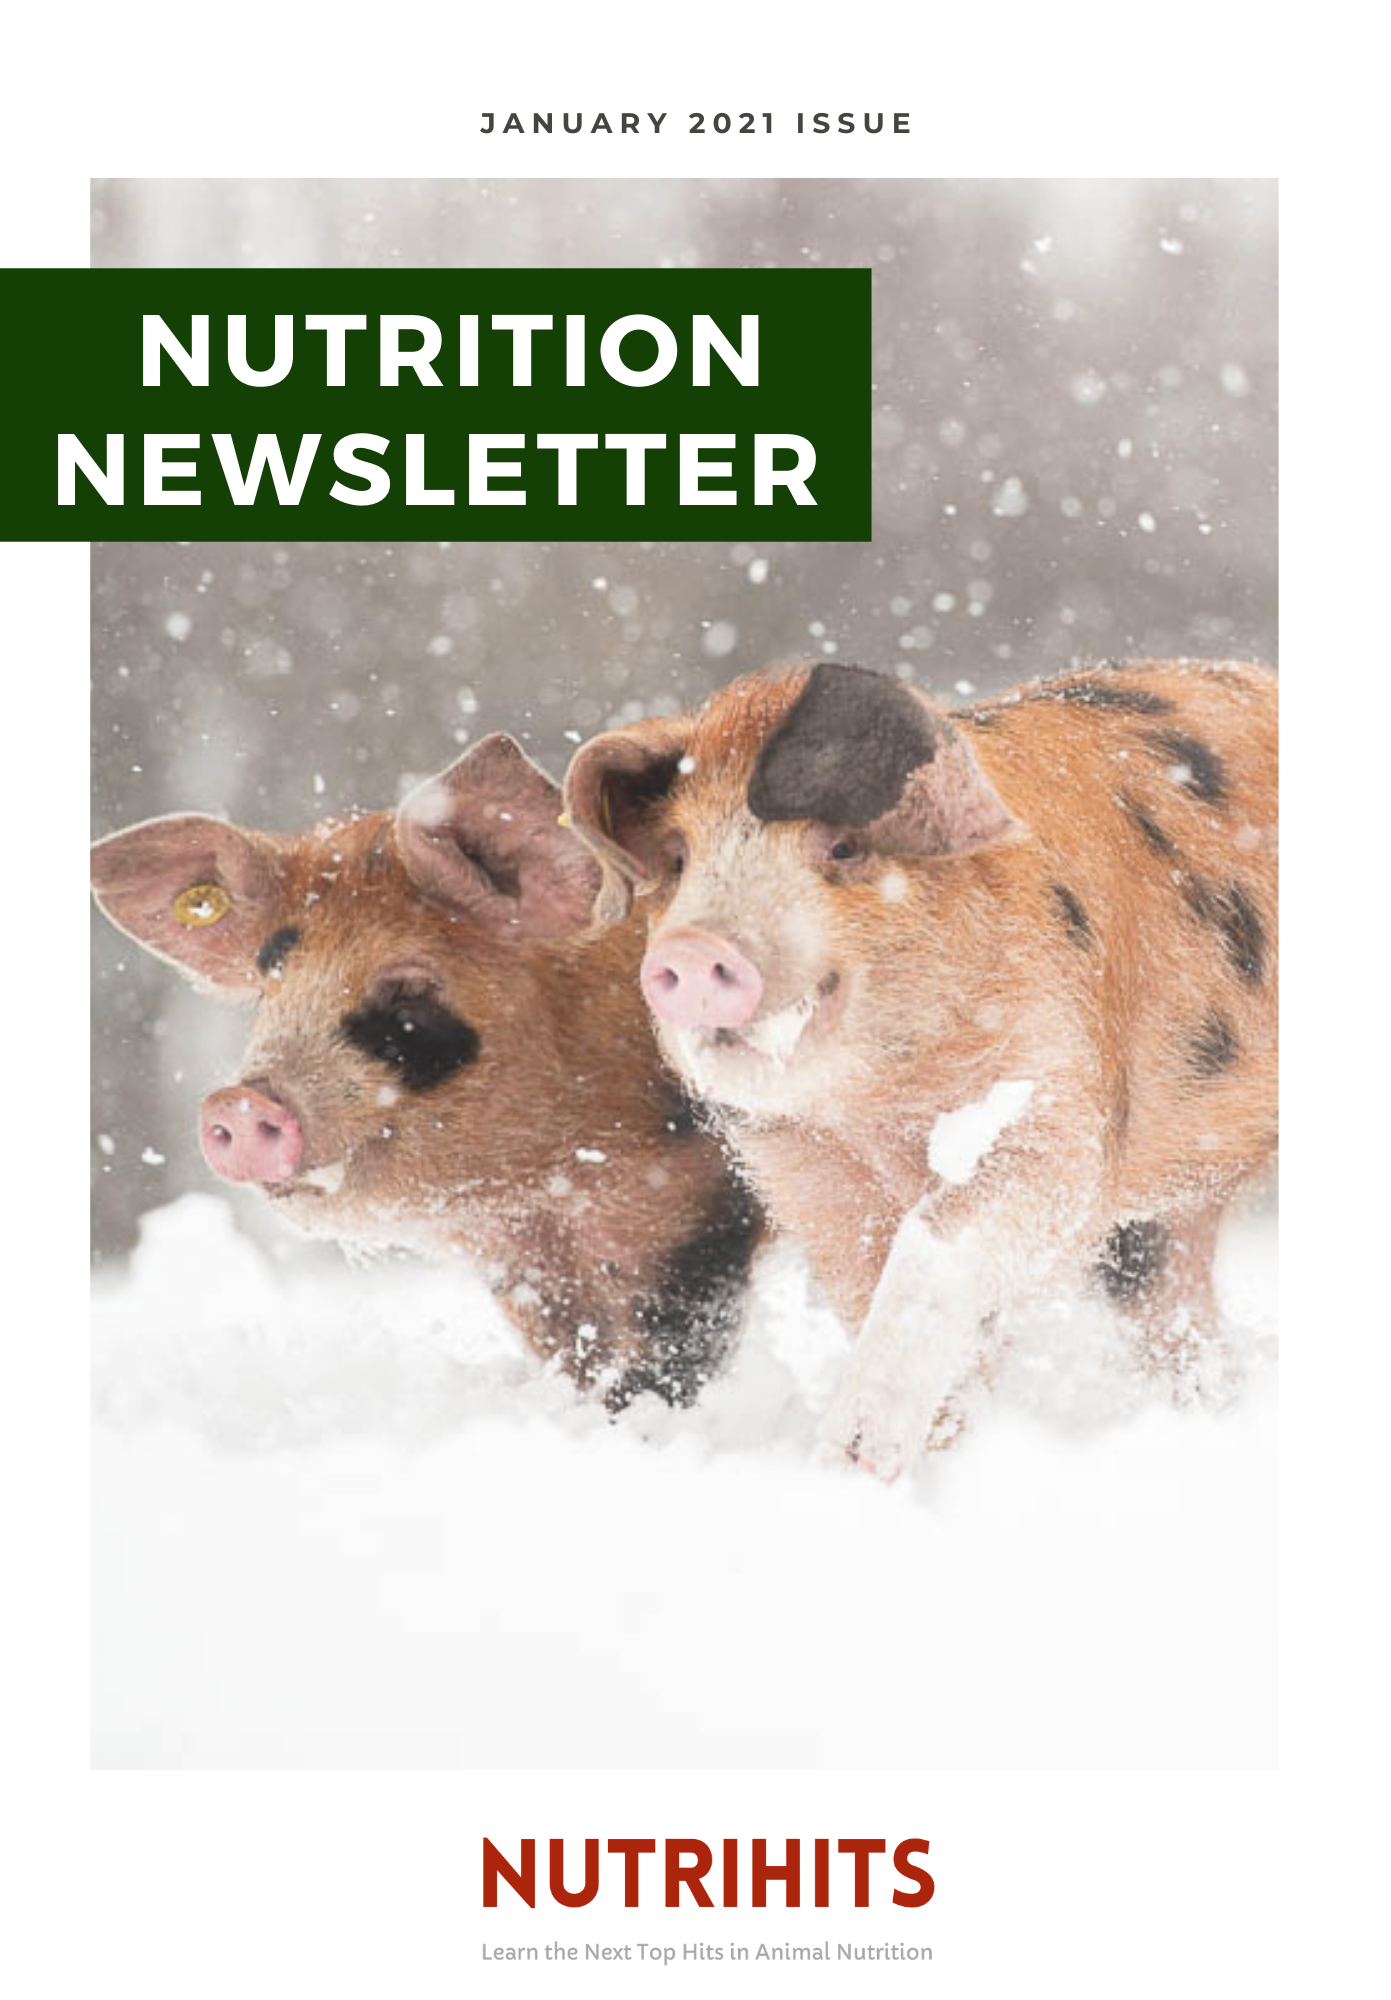 NUTRITION NEWSLETTER - January 2021